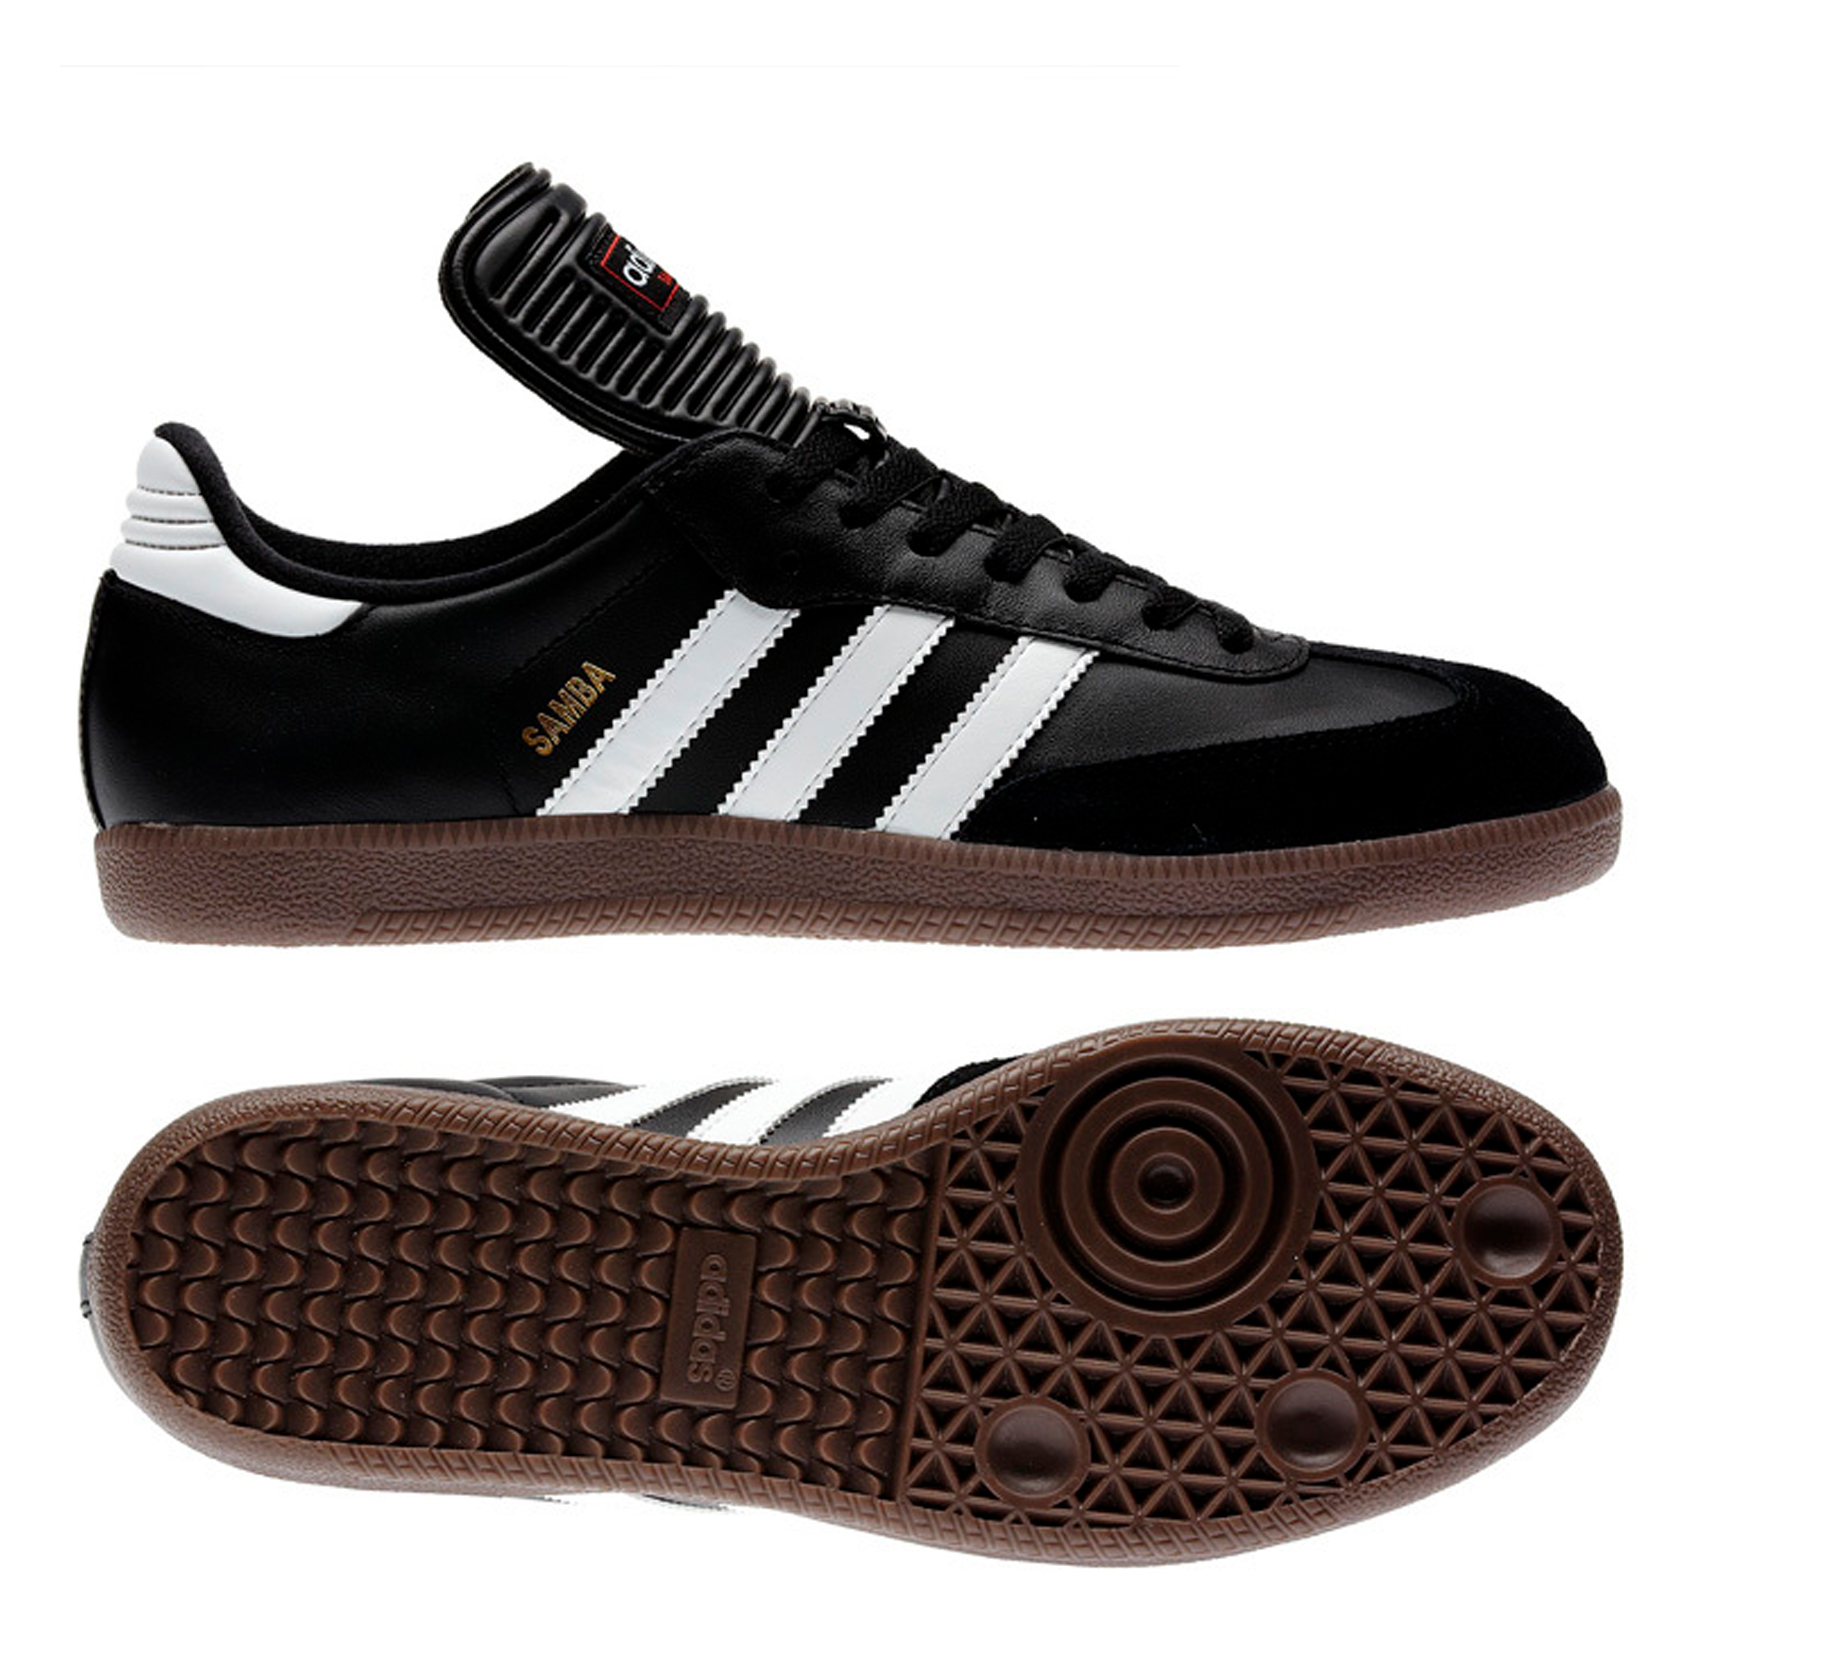 ADIDAS formed by Adolf Dassler after feud with brother Rudolf who then went  on to form Puma. 8c3740cc1d45